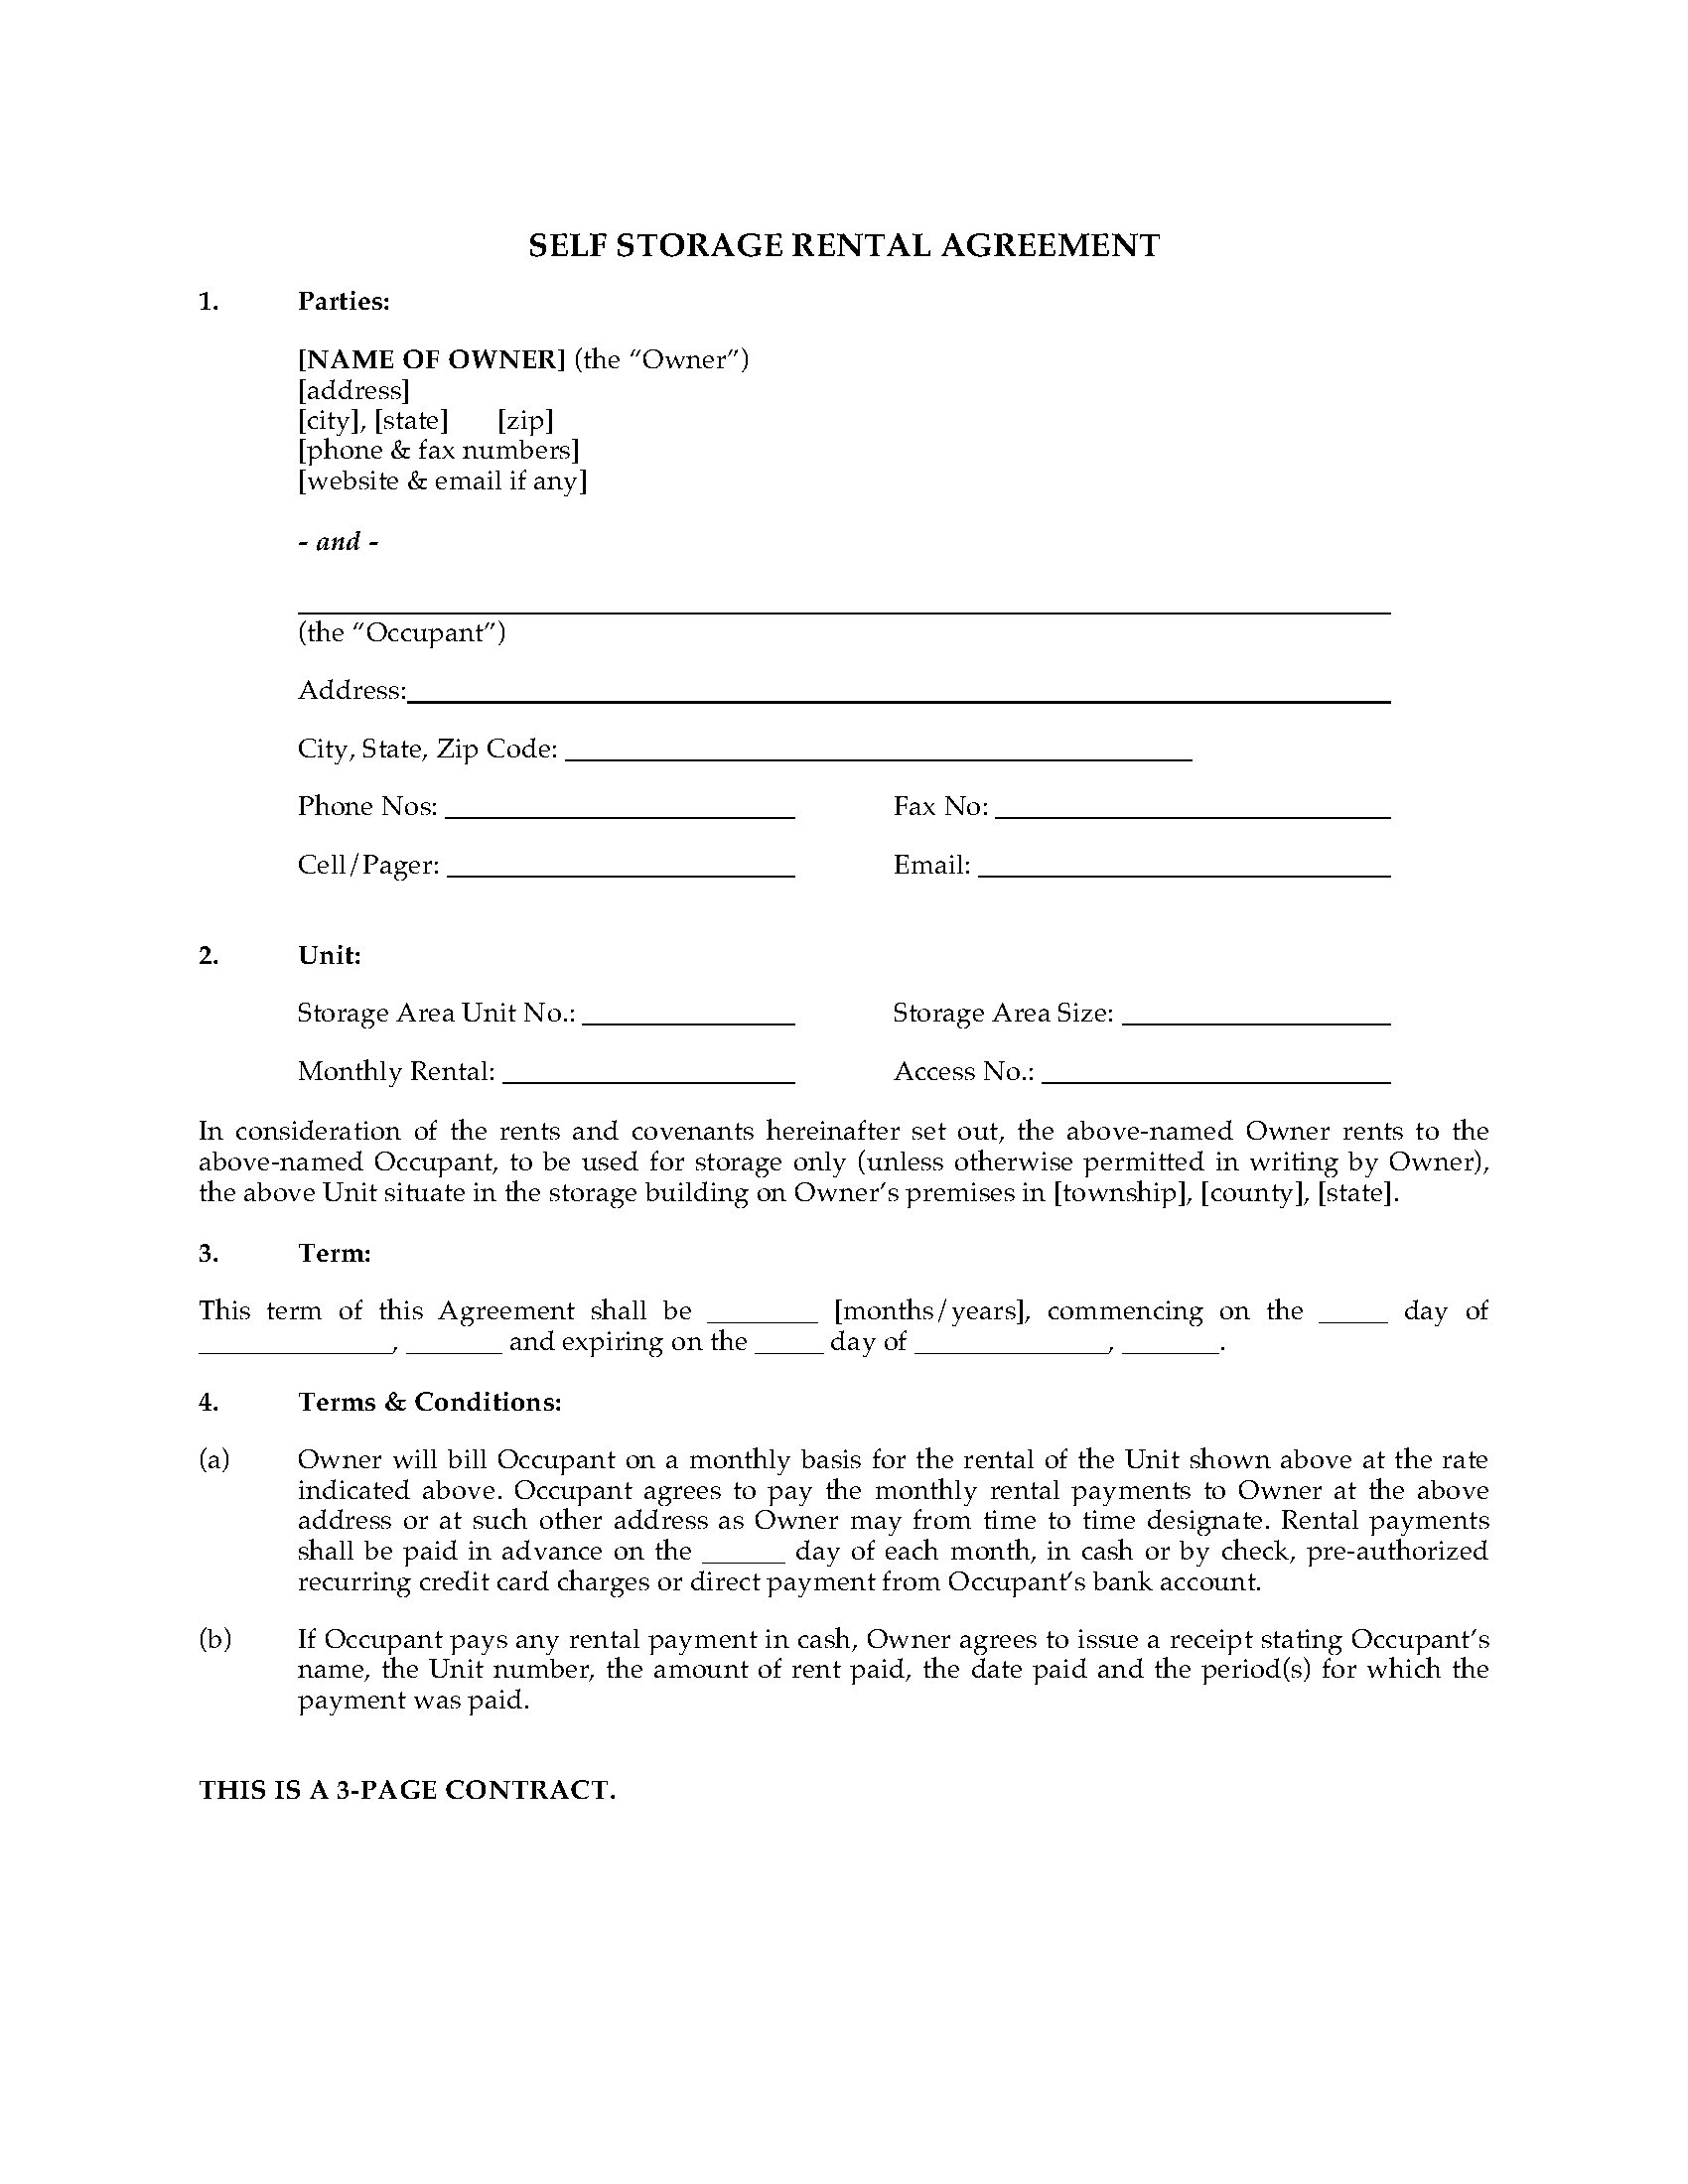 Usa Self Storage Unit Rental Agreement | Legal Forms And In Self Storage Business Plan Template